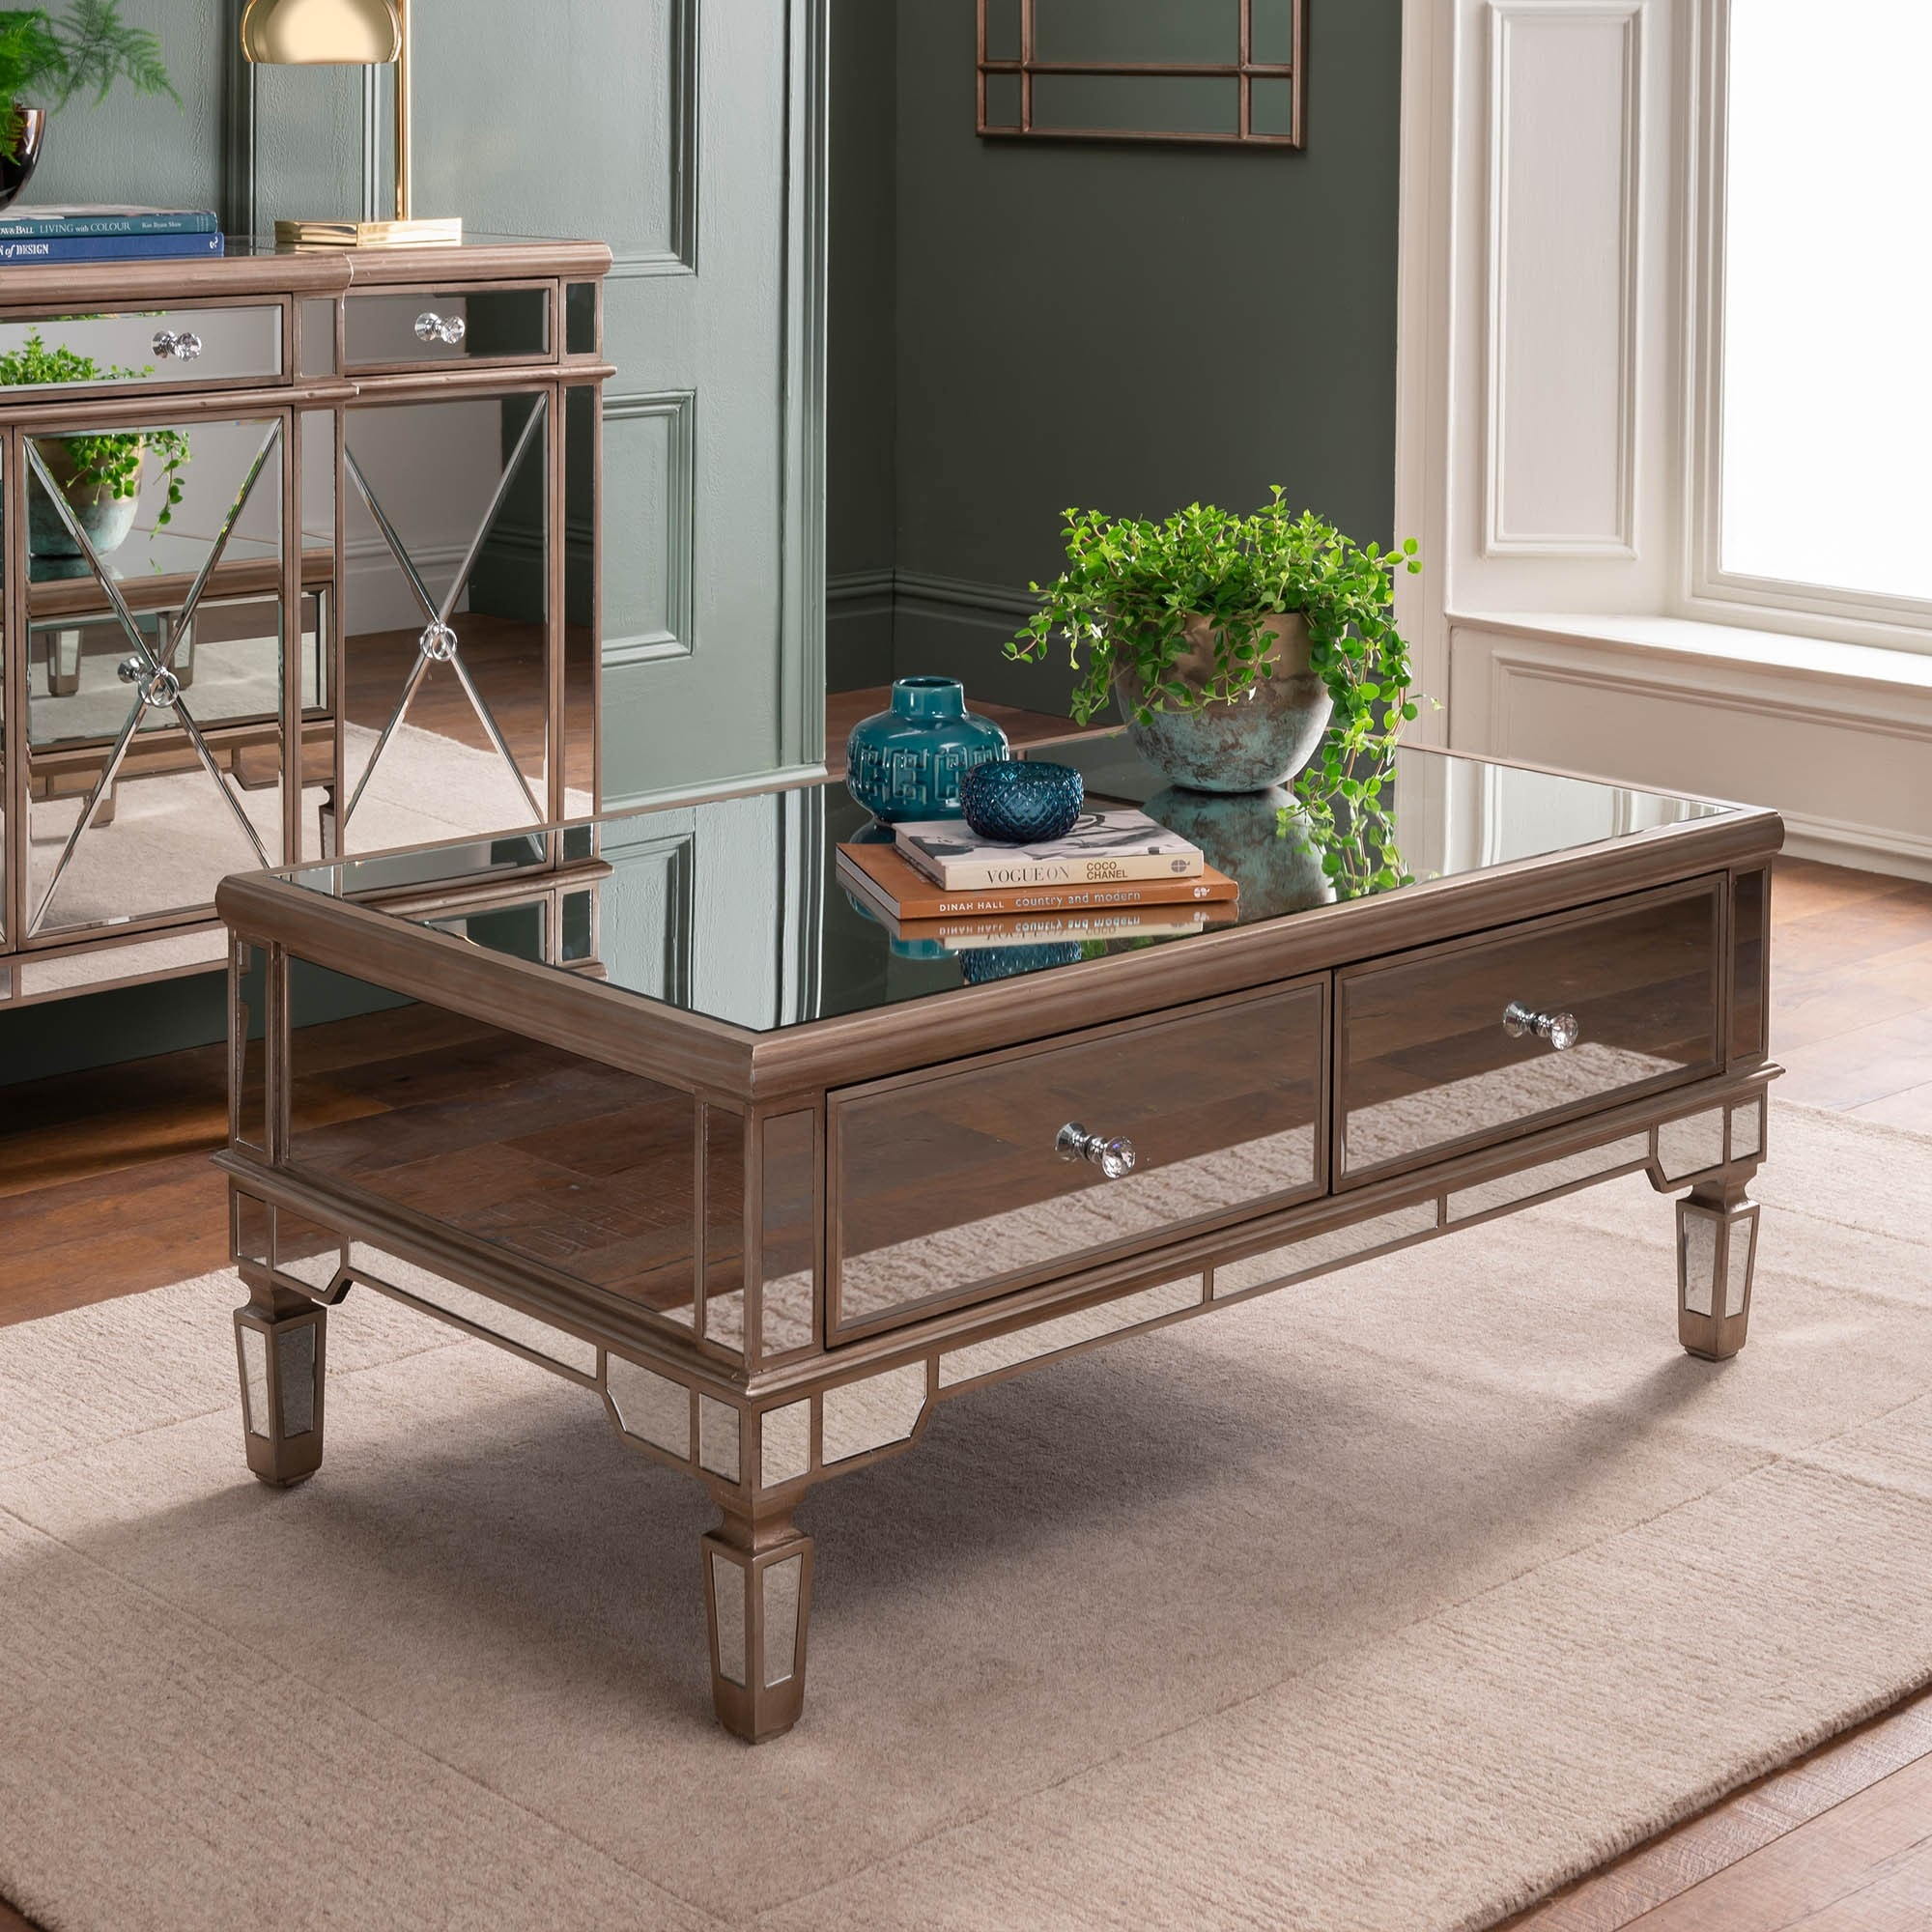 Marvelous Marseille 2 Drawer Mirrored Coffee Table Dailytribune Chair Design For Home Dailytribuneorg